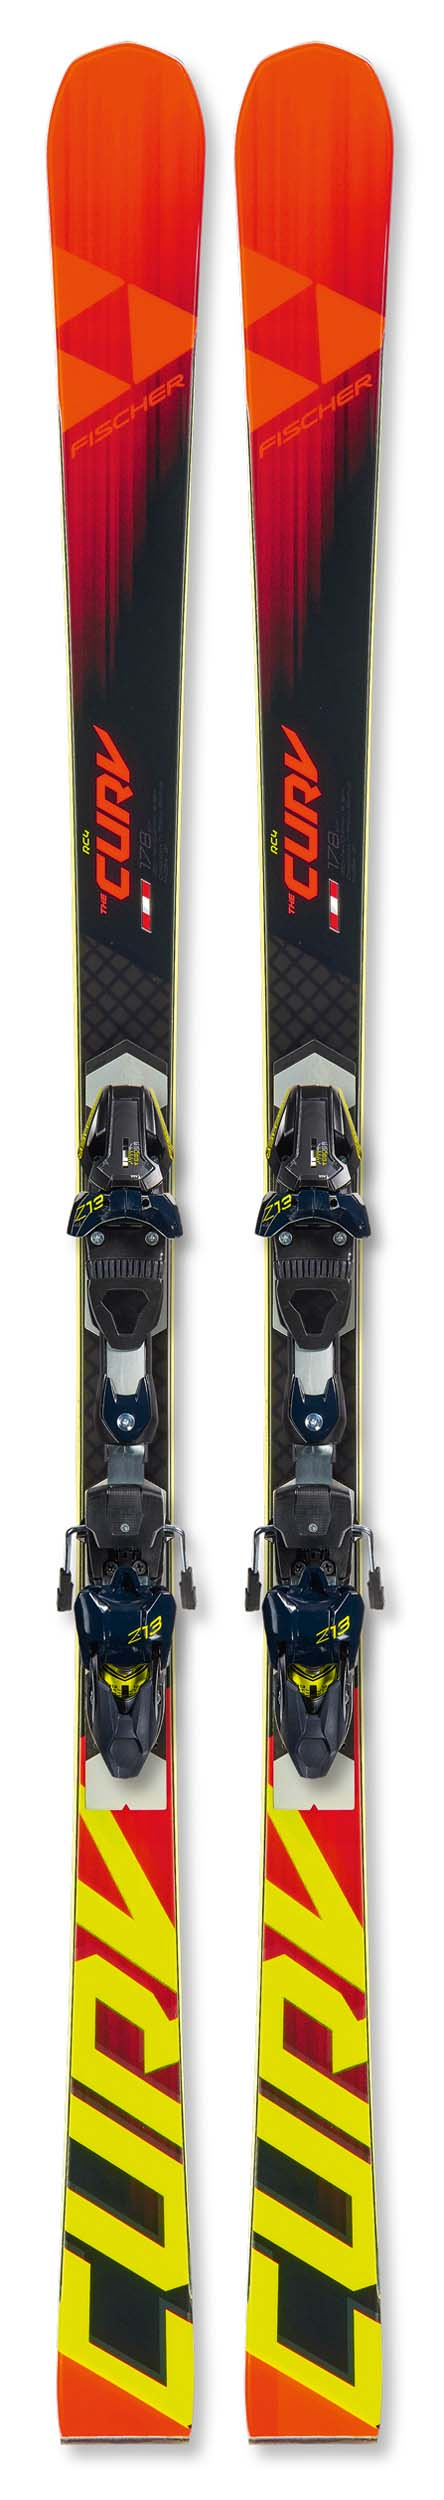 Fischer 2020 RC4 The Curv Curv Booster Skis w/RC4 Z13 Freeflex Bindings NEW !! 164,171,185cm